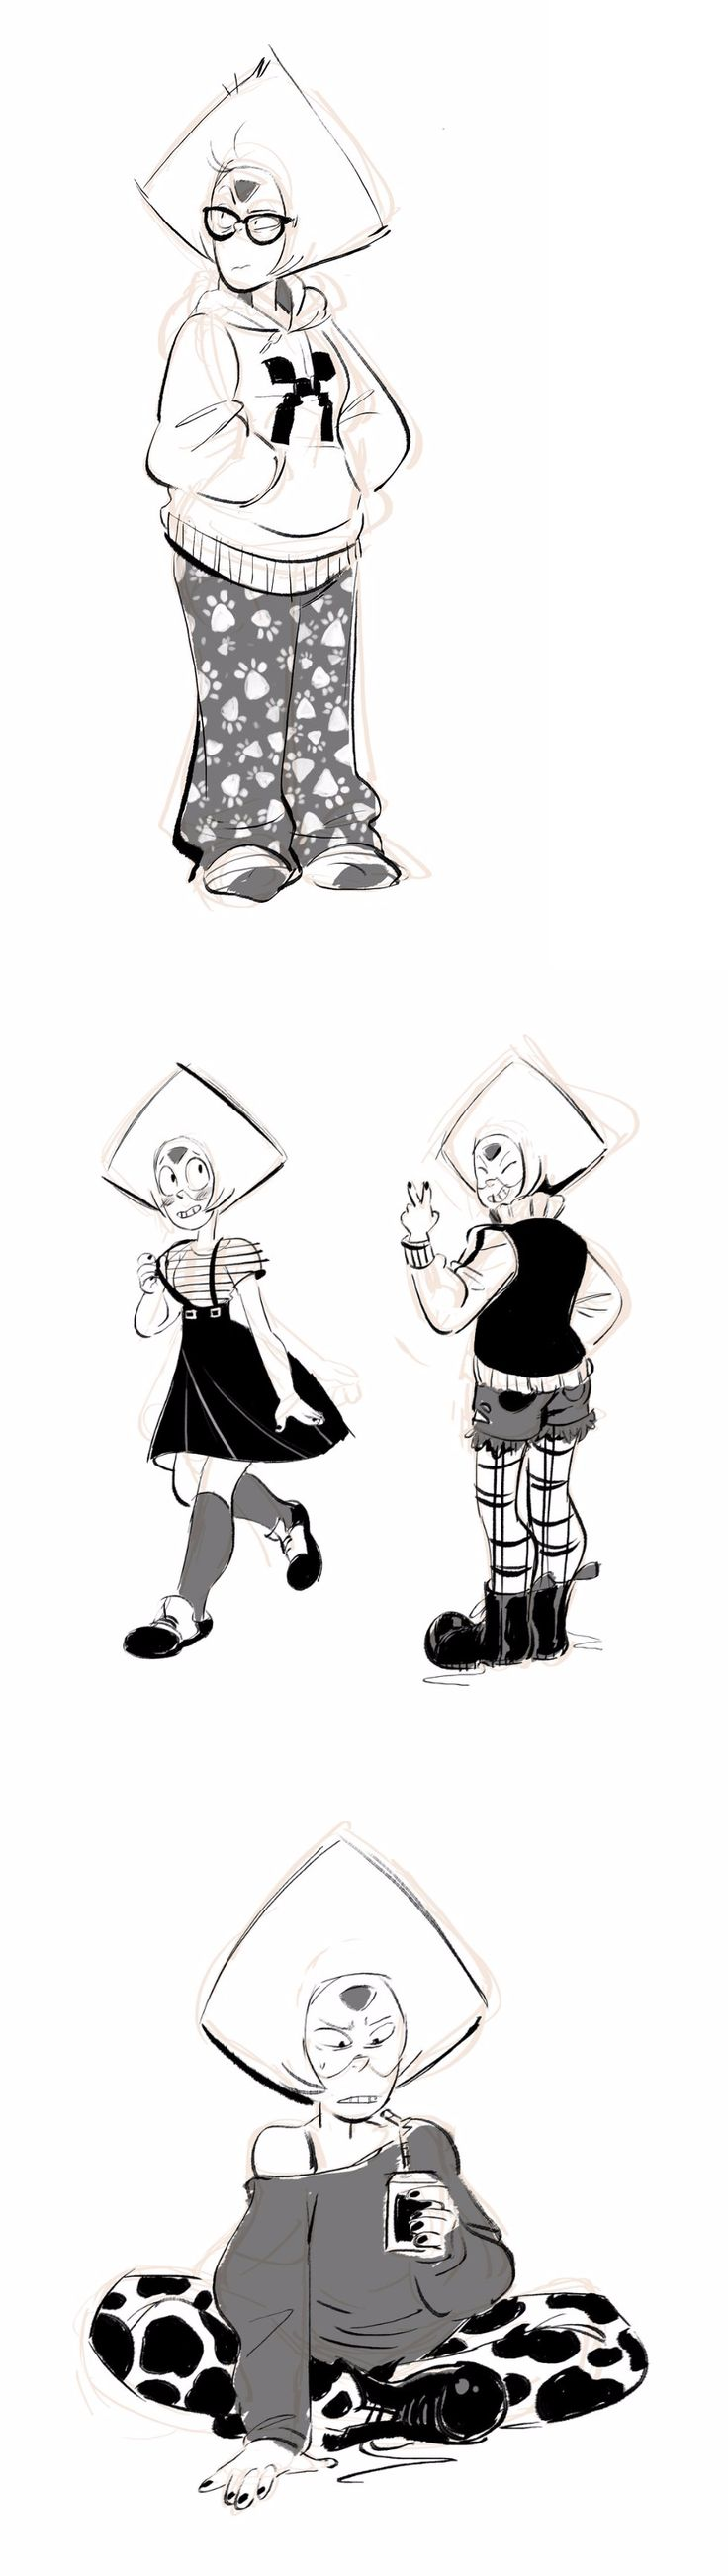 Blog date: 7 21 2.  The Steven has apparently shown me these garments called clothing.